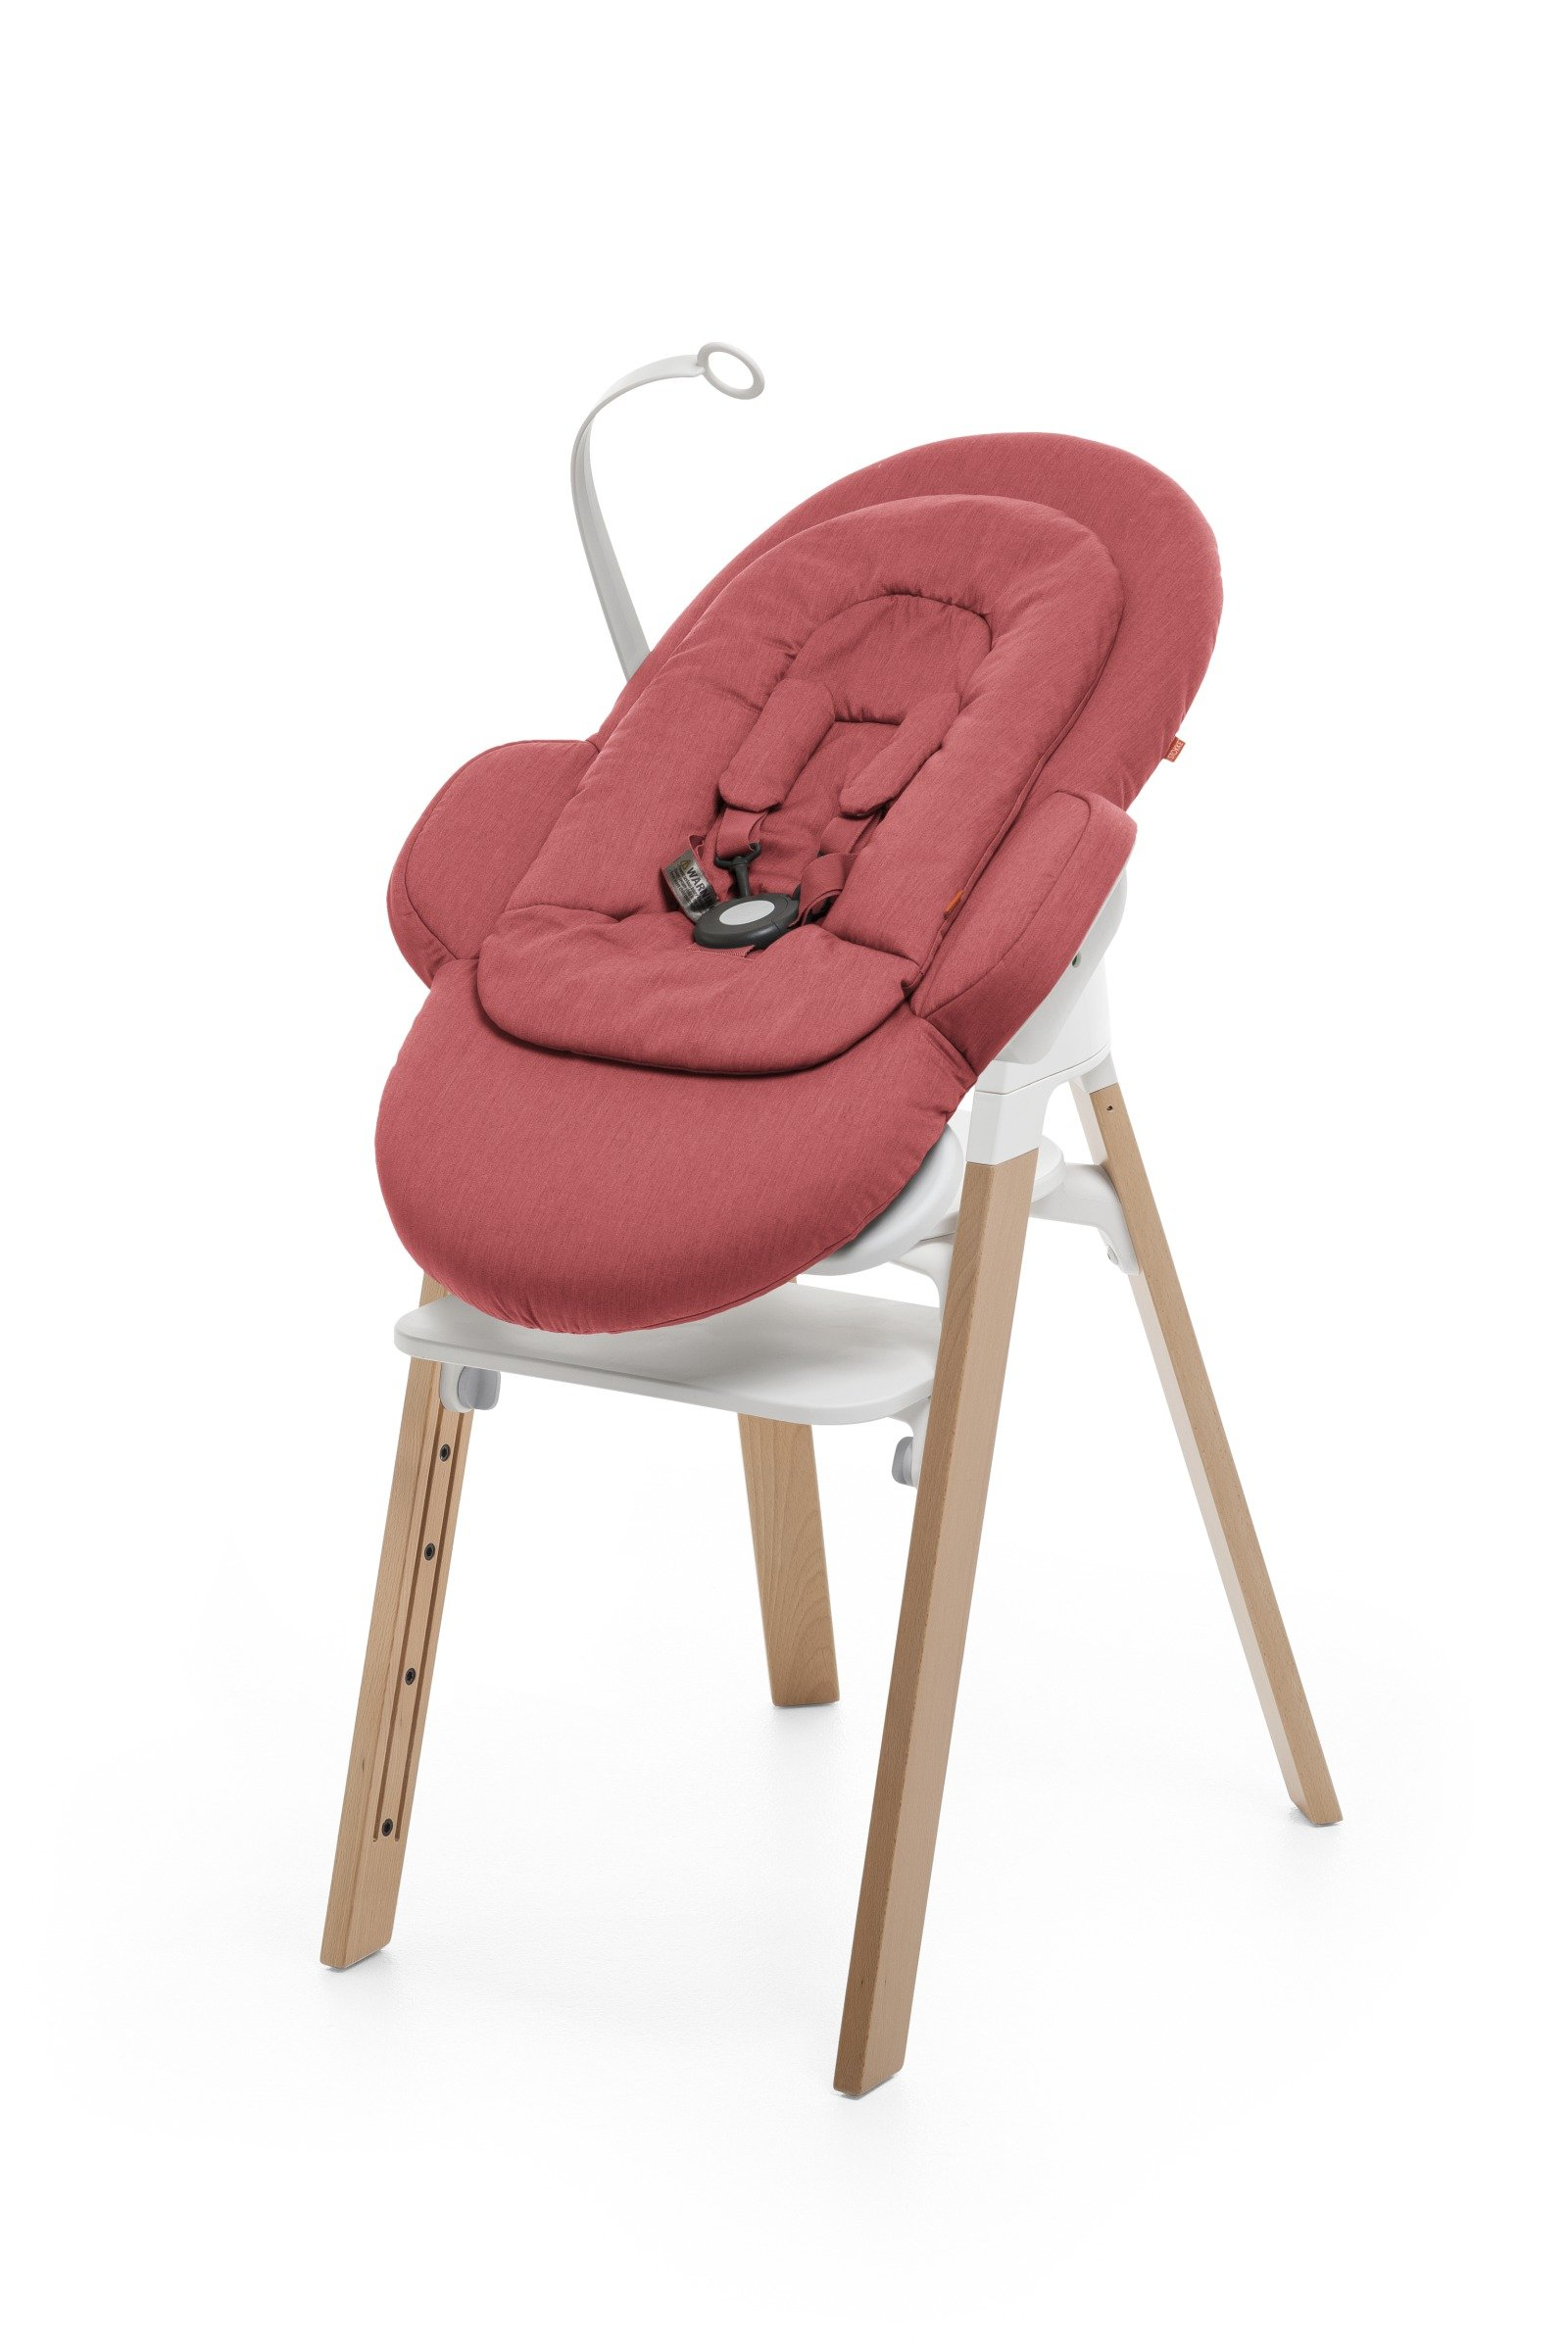 Bouncer, Red. Mounted on Stokke Steps highchair.